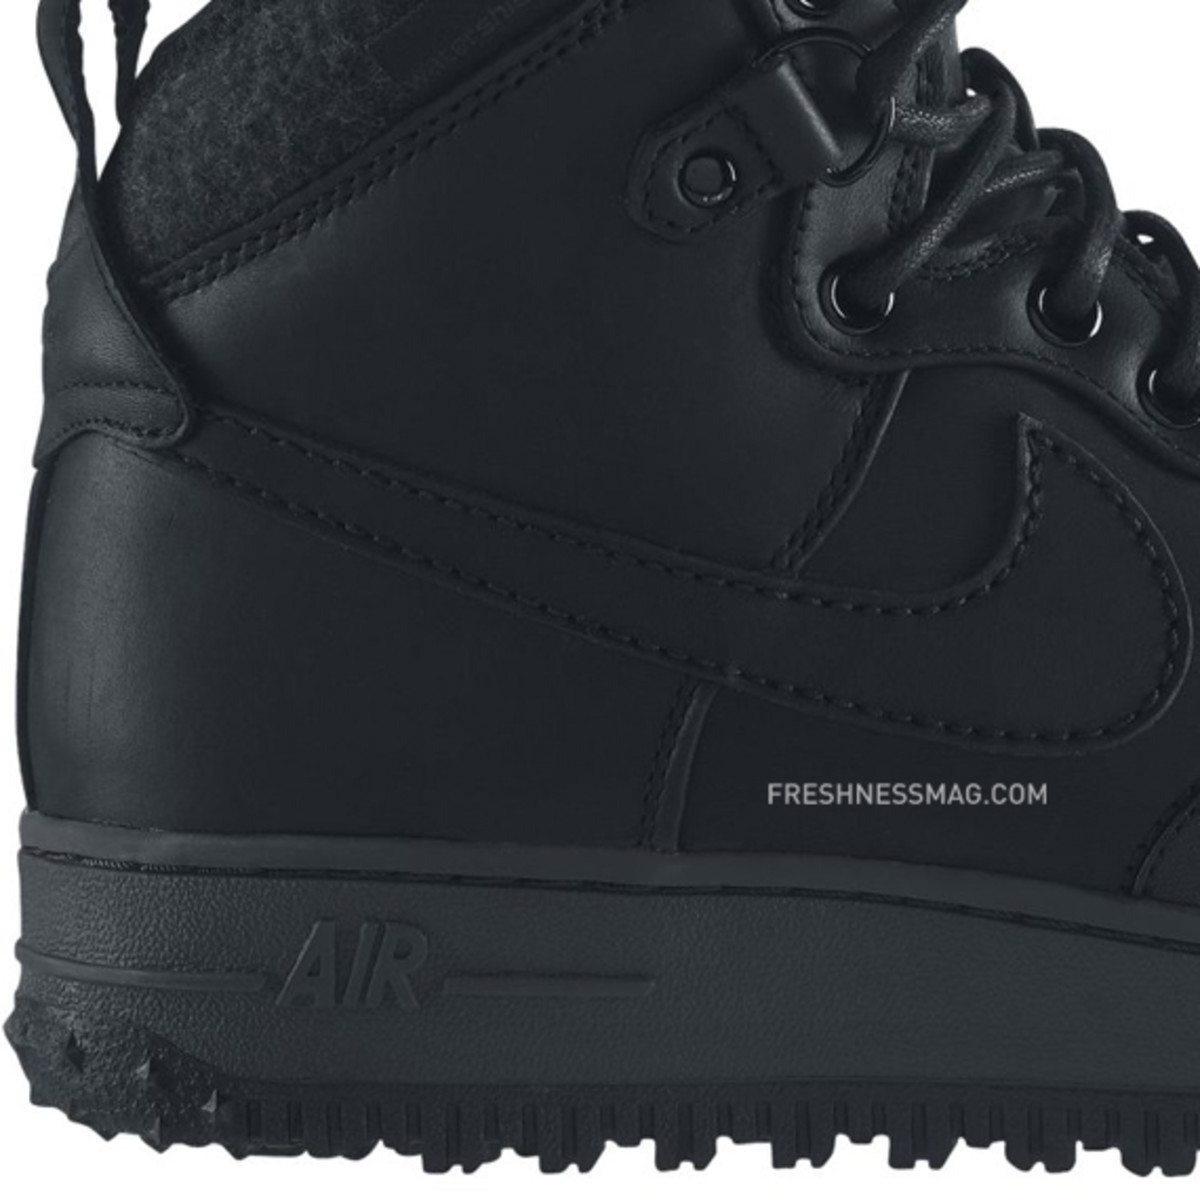 nike-sportswear-air-force-1-duckboots-05